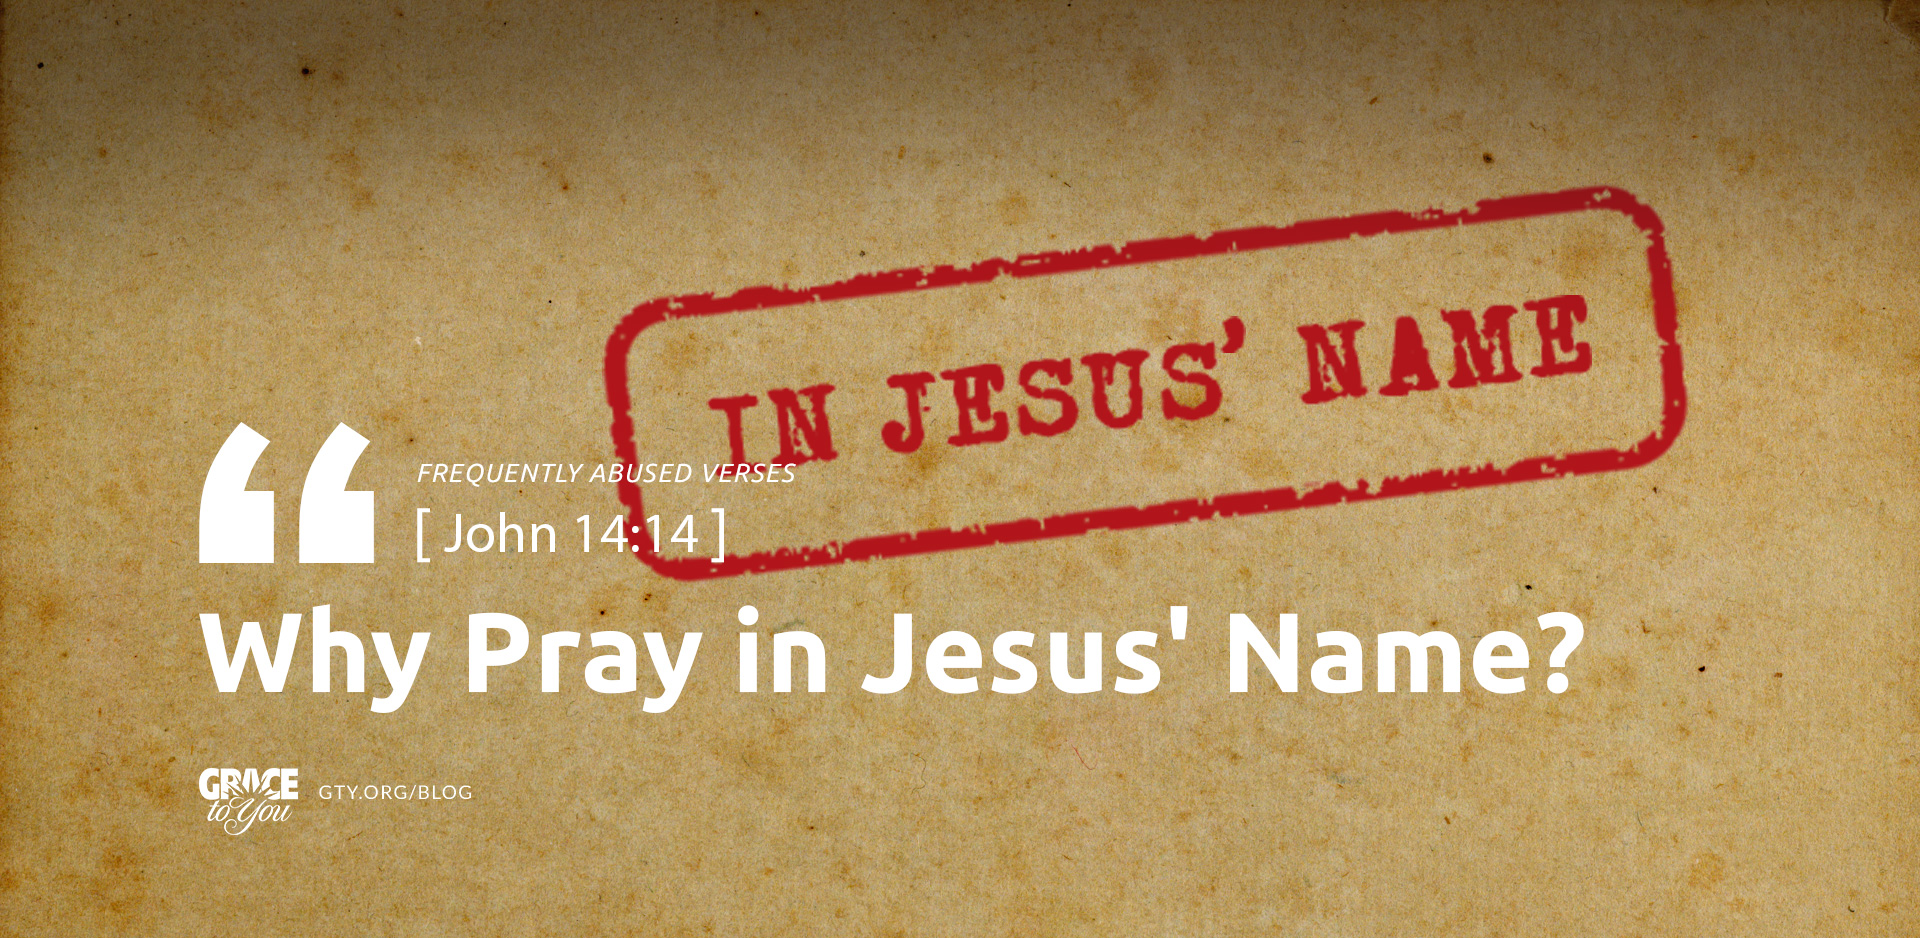 Blog Post - Frequently Abused Verses: Why Pray in Jesus' Name?